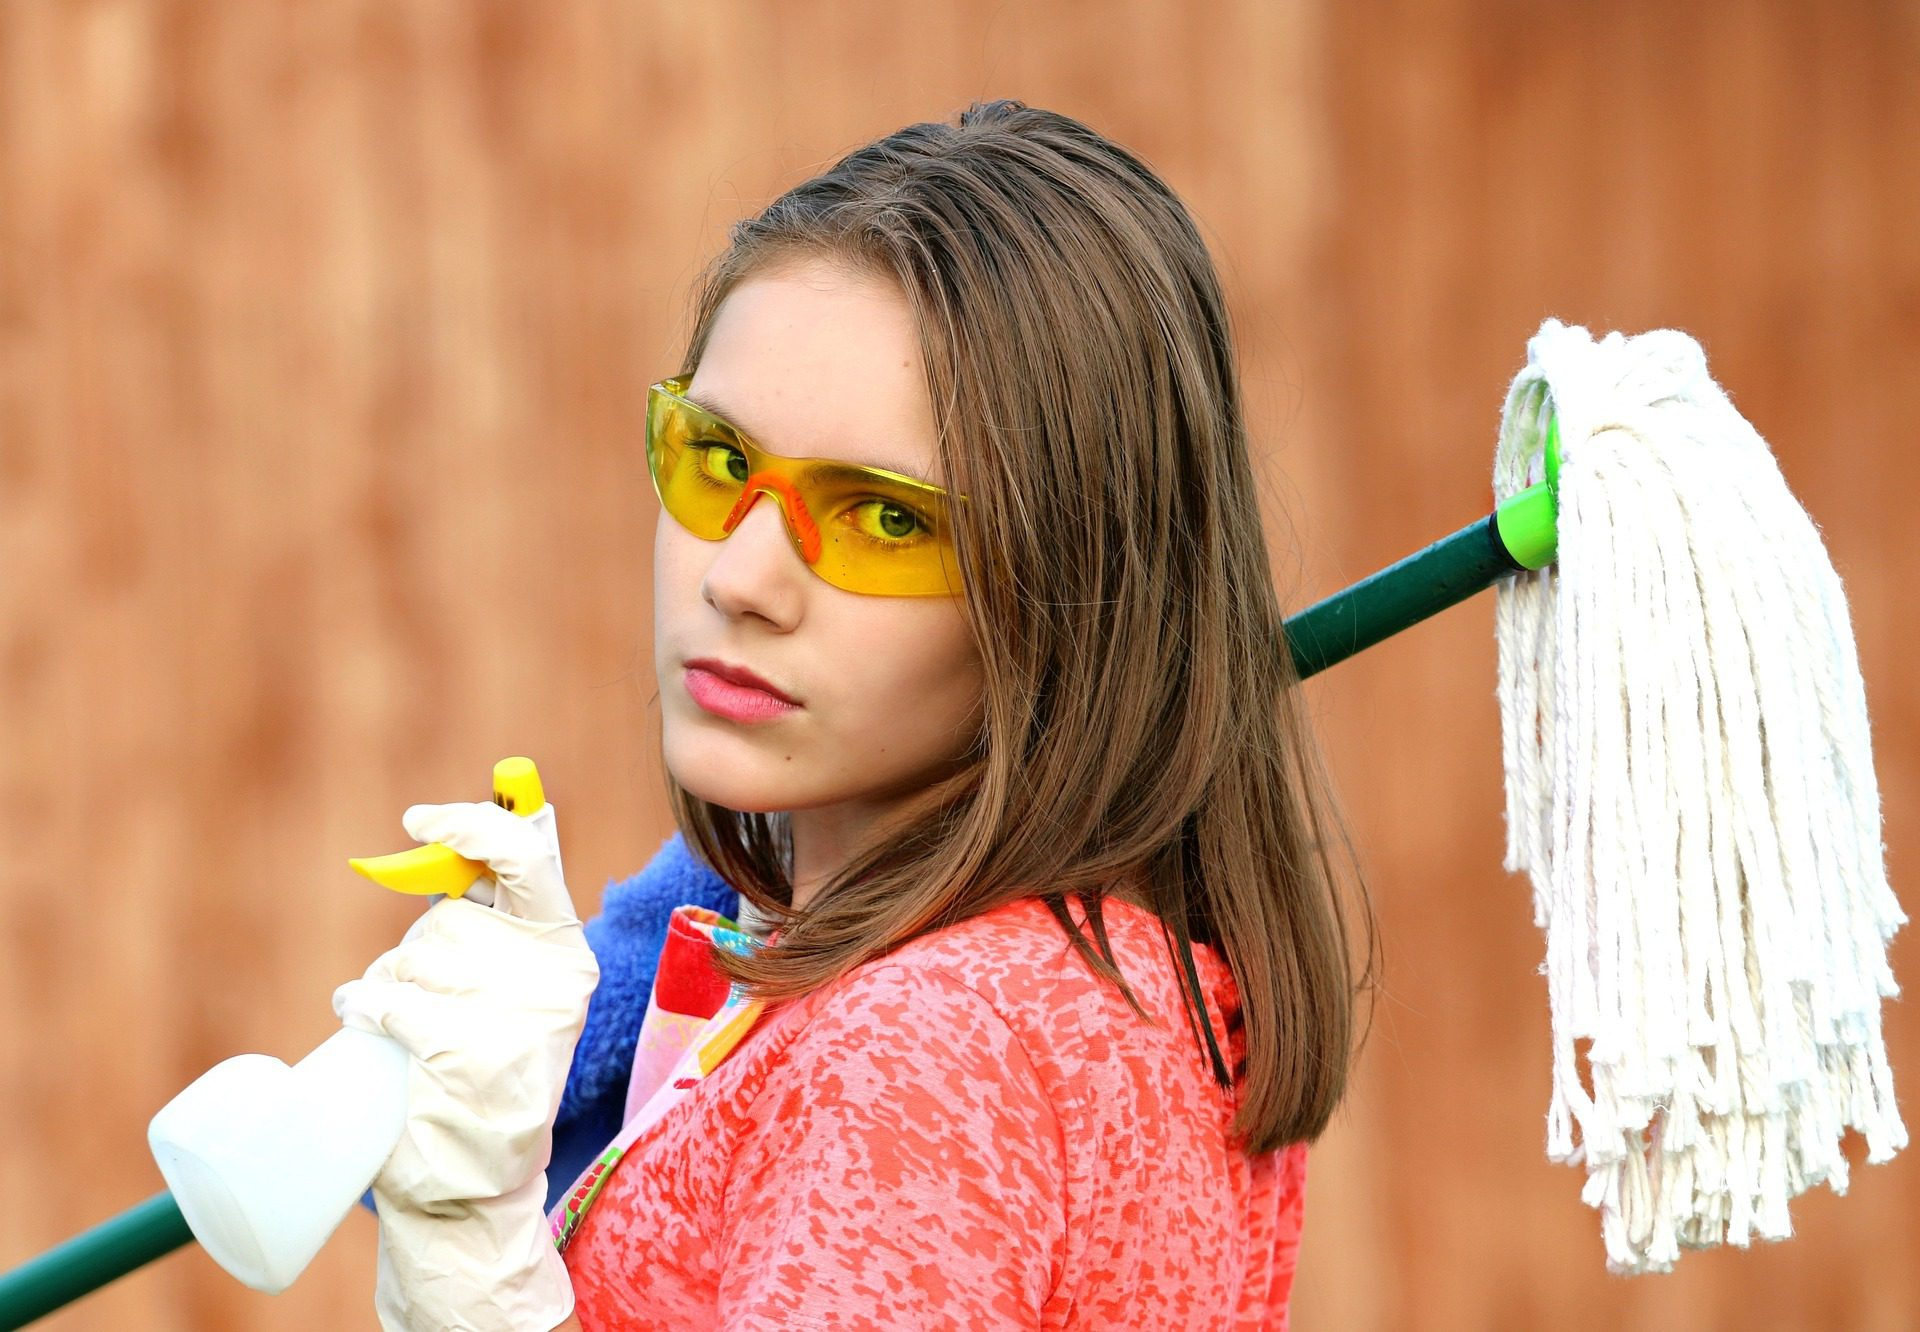 You are currently viewing End of Tenancy To Hire a Professional Cleaner or Not?